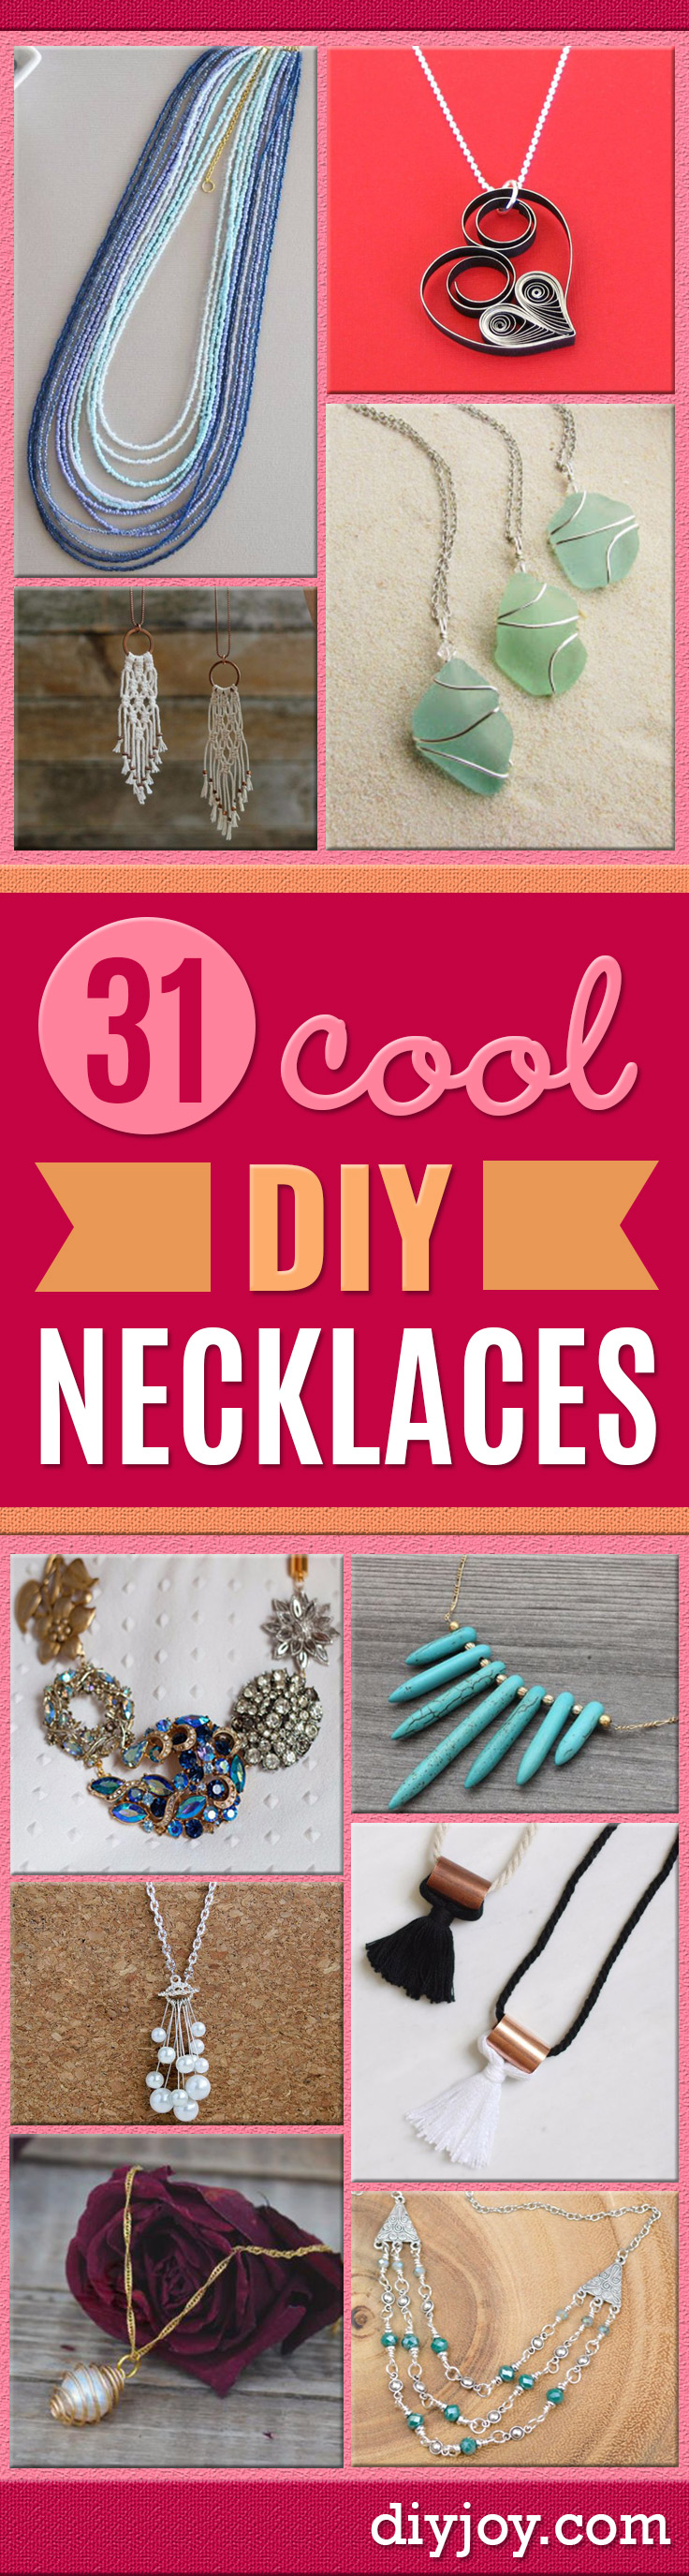 DIY Necklace Ideas - Easy Handmade Necklaces with Step by Step Tutorials - Pendant, Beads, Statement, Choker, Layered Boho, Chain and Simple Looks - Creative Jewlery Making Ideas for Women and Teens, Girls - Crafts and Cool Fashion Ideas for Women, Teens and Teenagers http://diyjoy.com/diy-necklaces